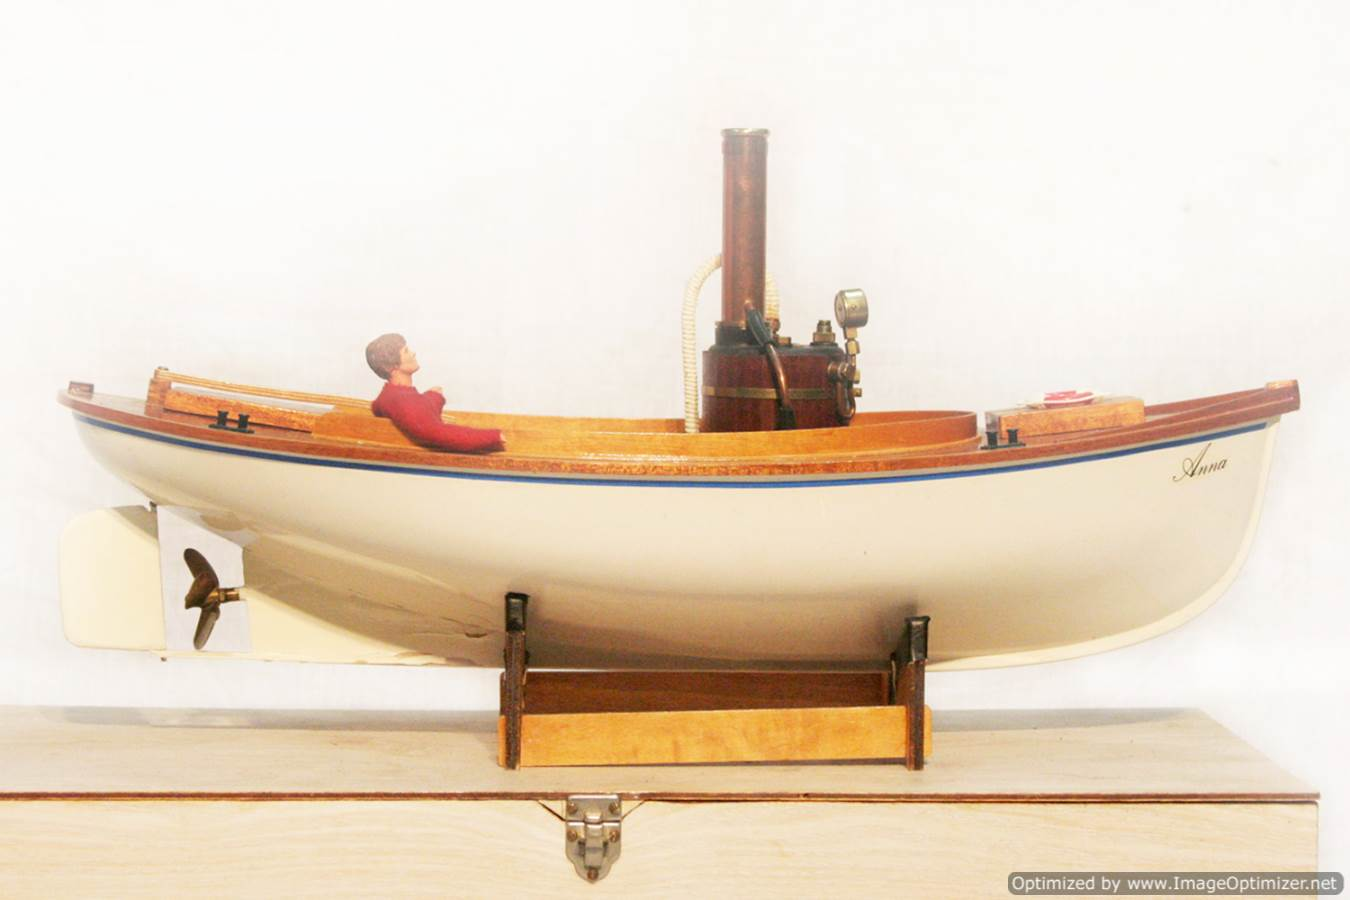 test anna-cheddar-steam-boat-live-steam-model-for-sale-19-optimized